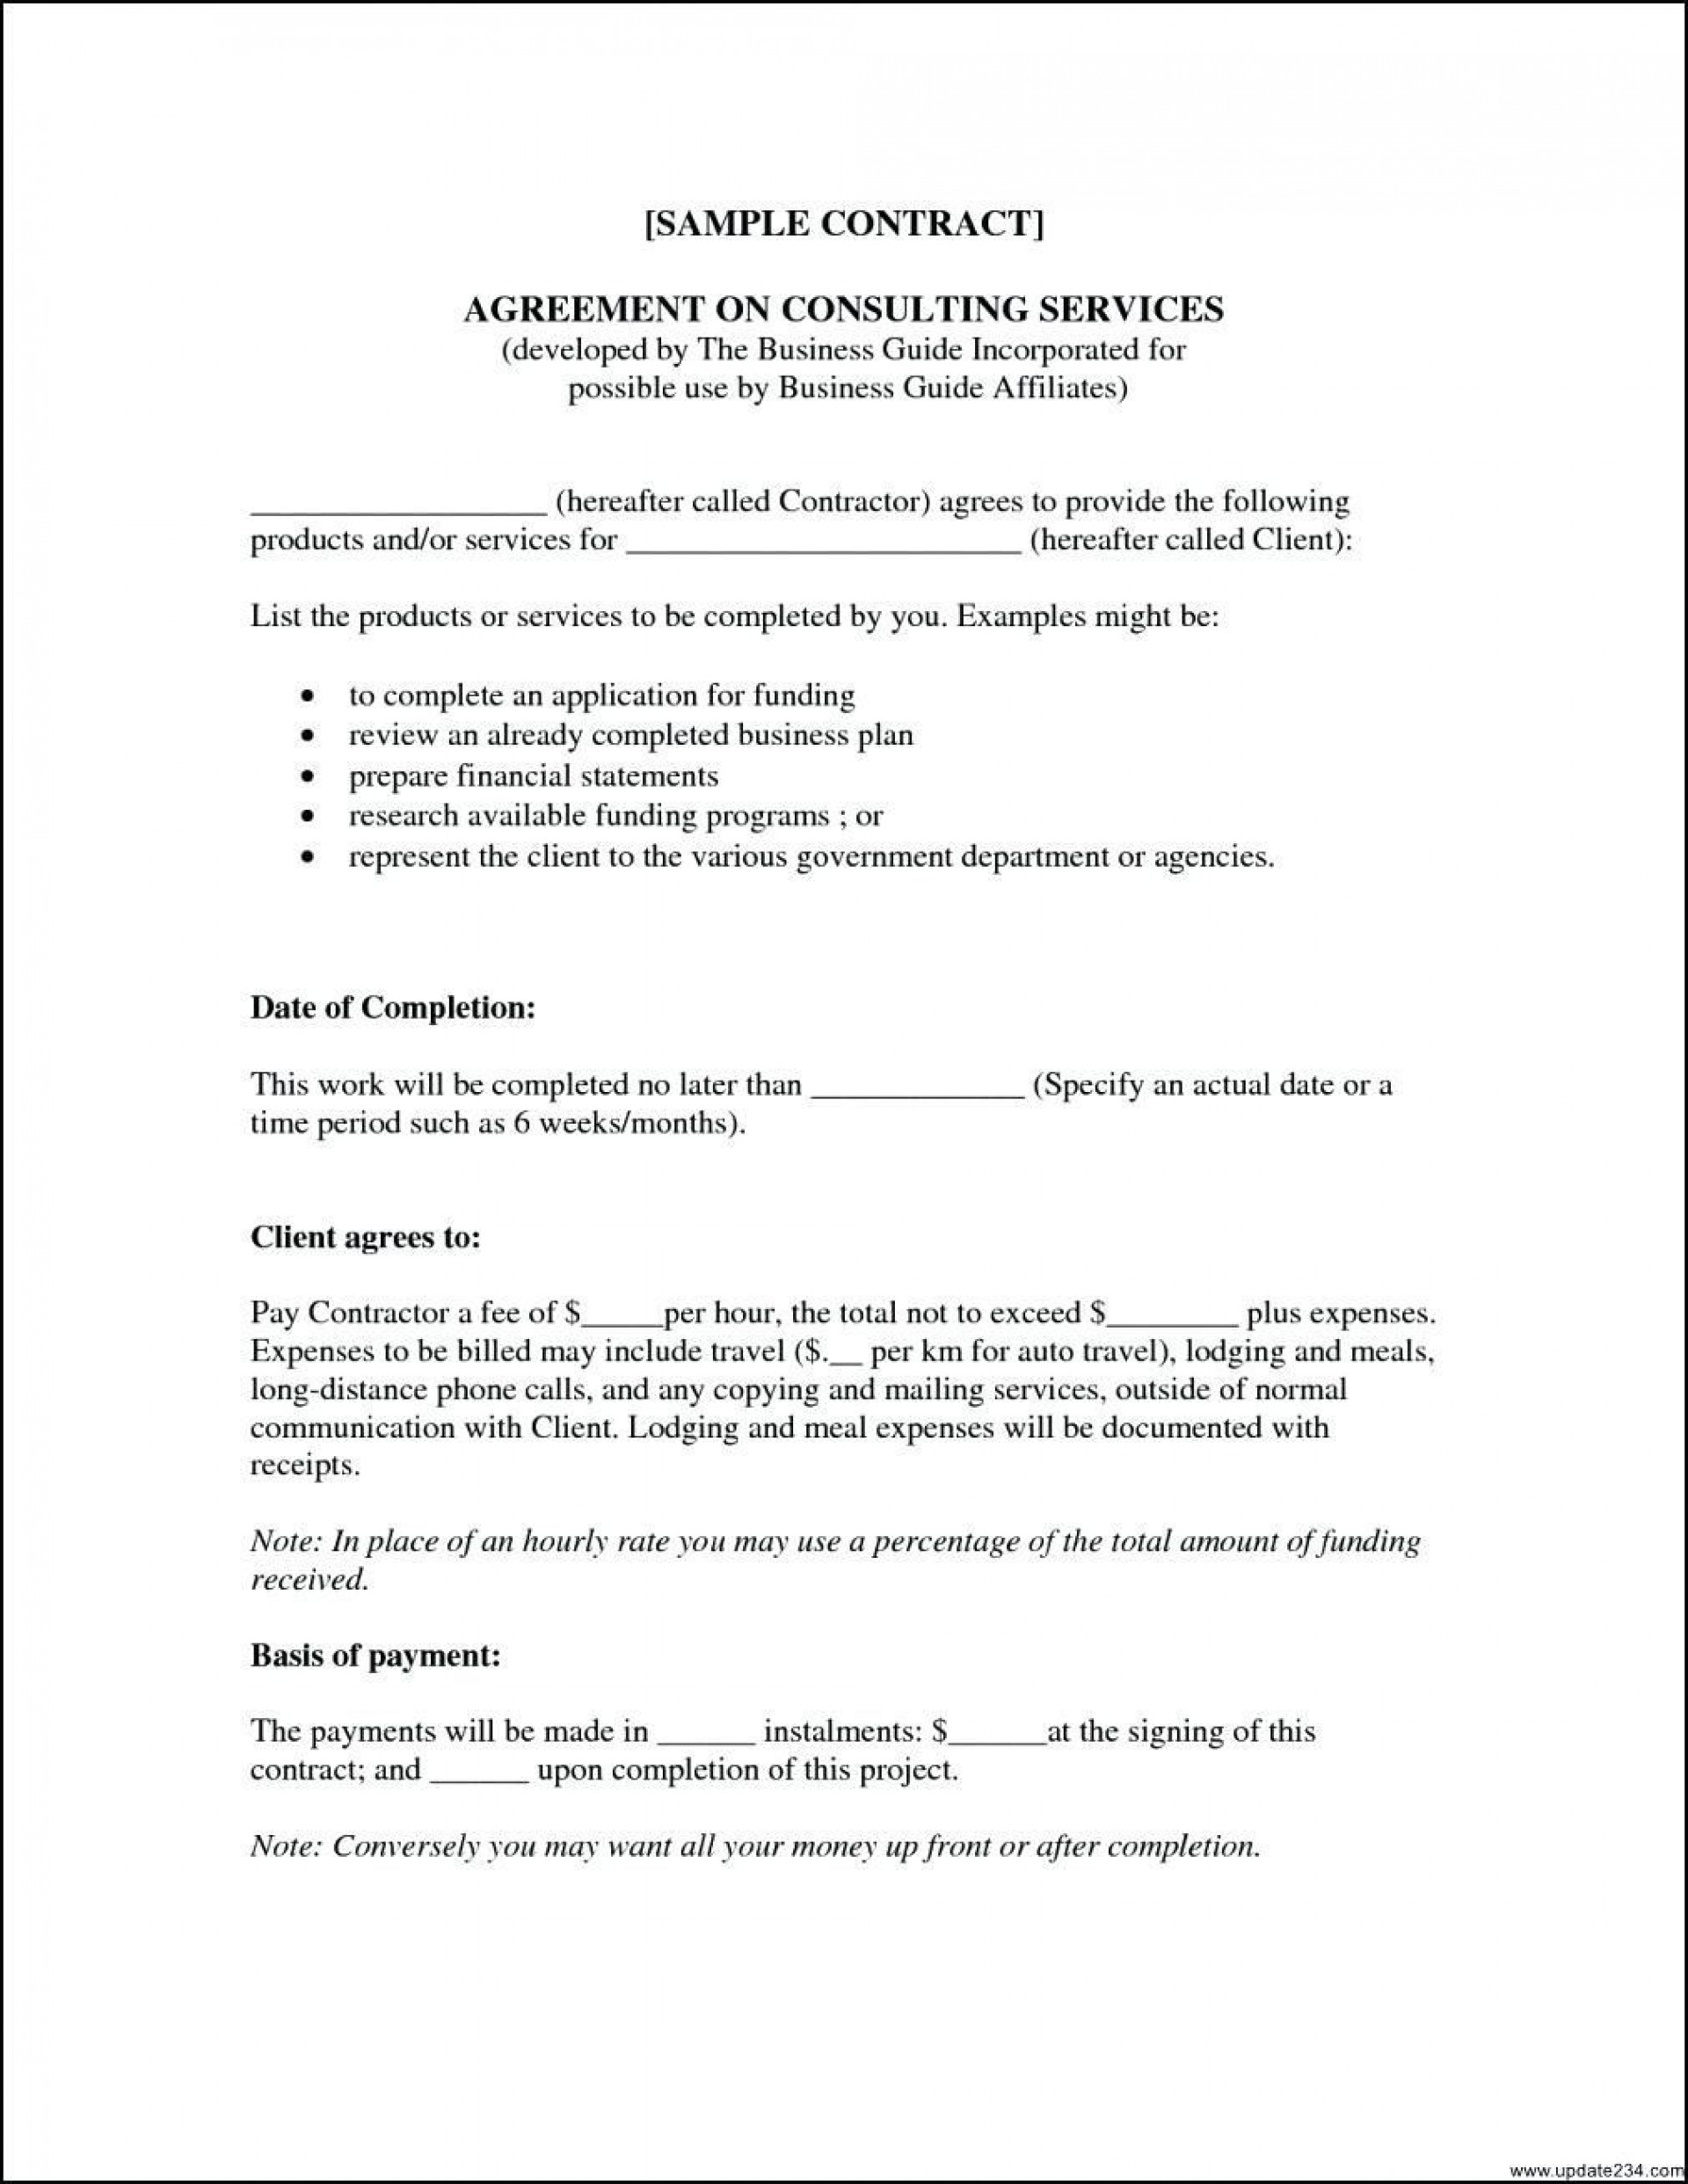 000 Simple Consulting Service Agreement Template Photo  Sample With Retainer Form Australia1920